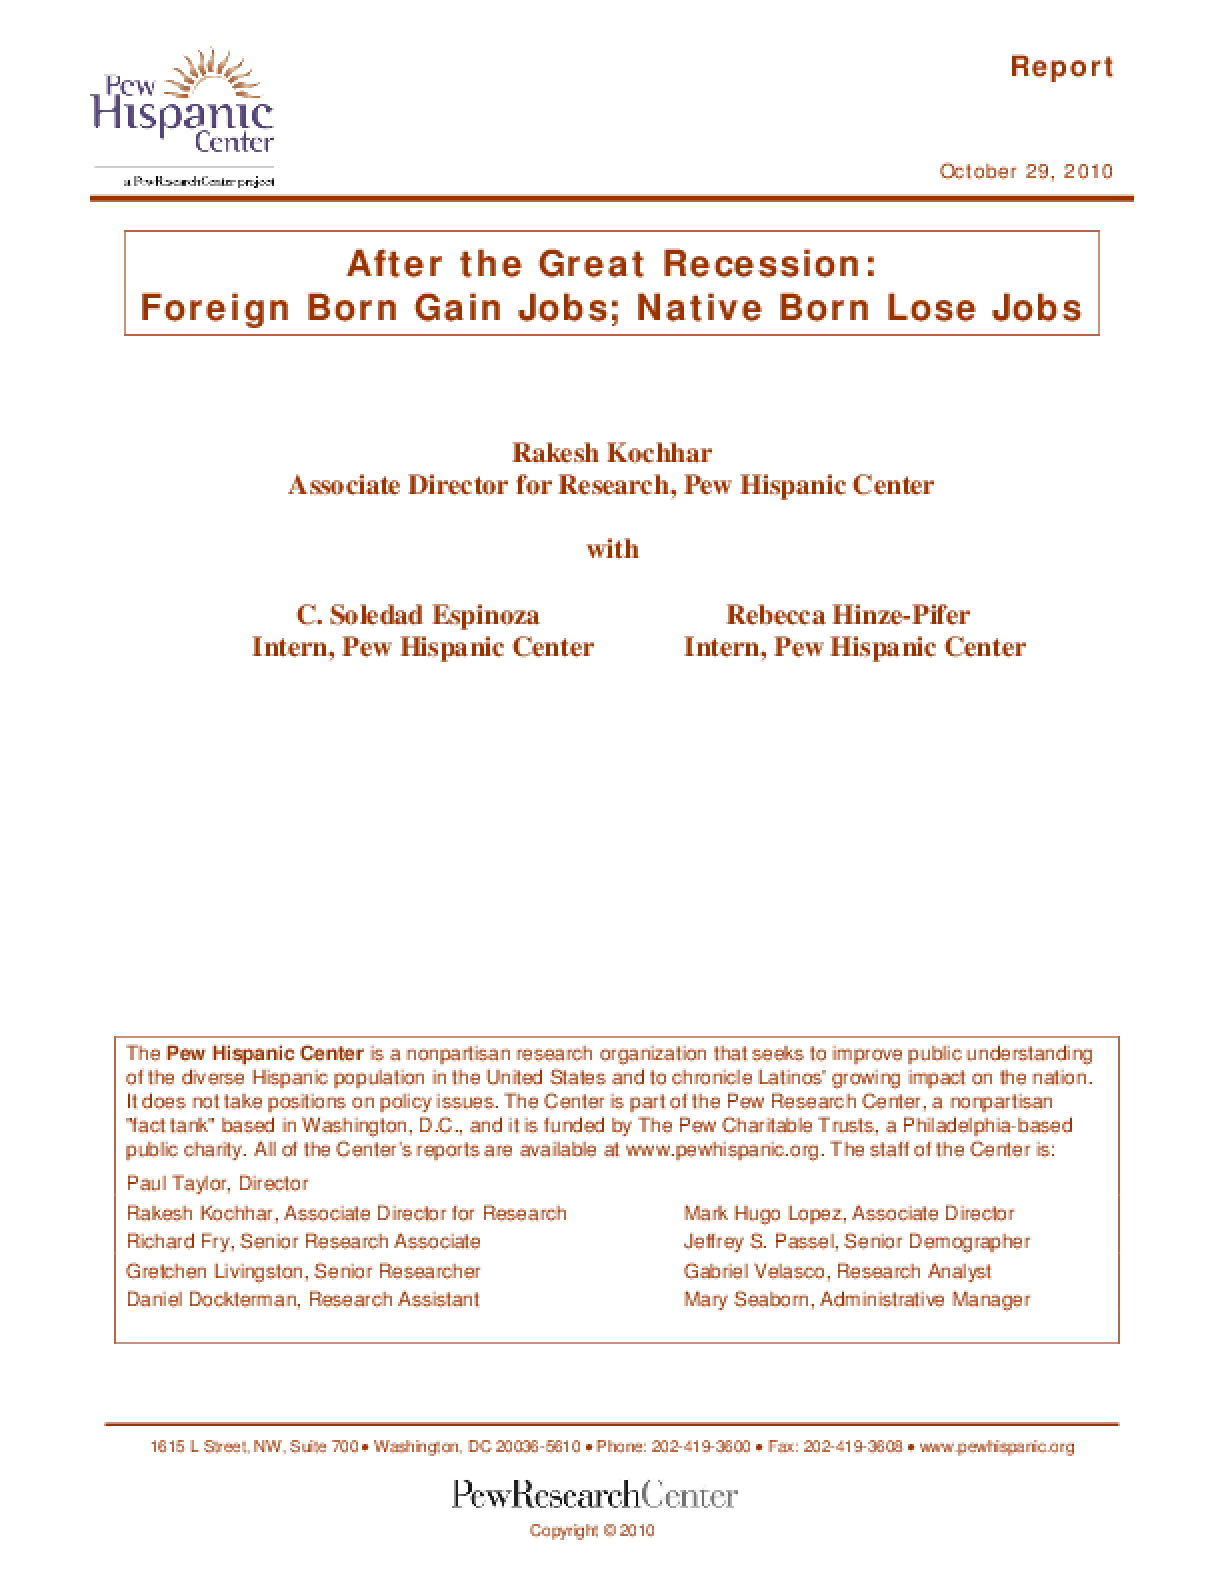 After the Great Recession: Foreign Born Gain Jobs; Native Born Lose Jobs